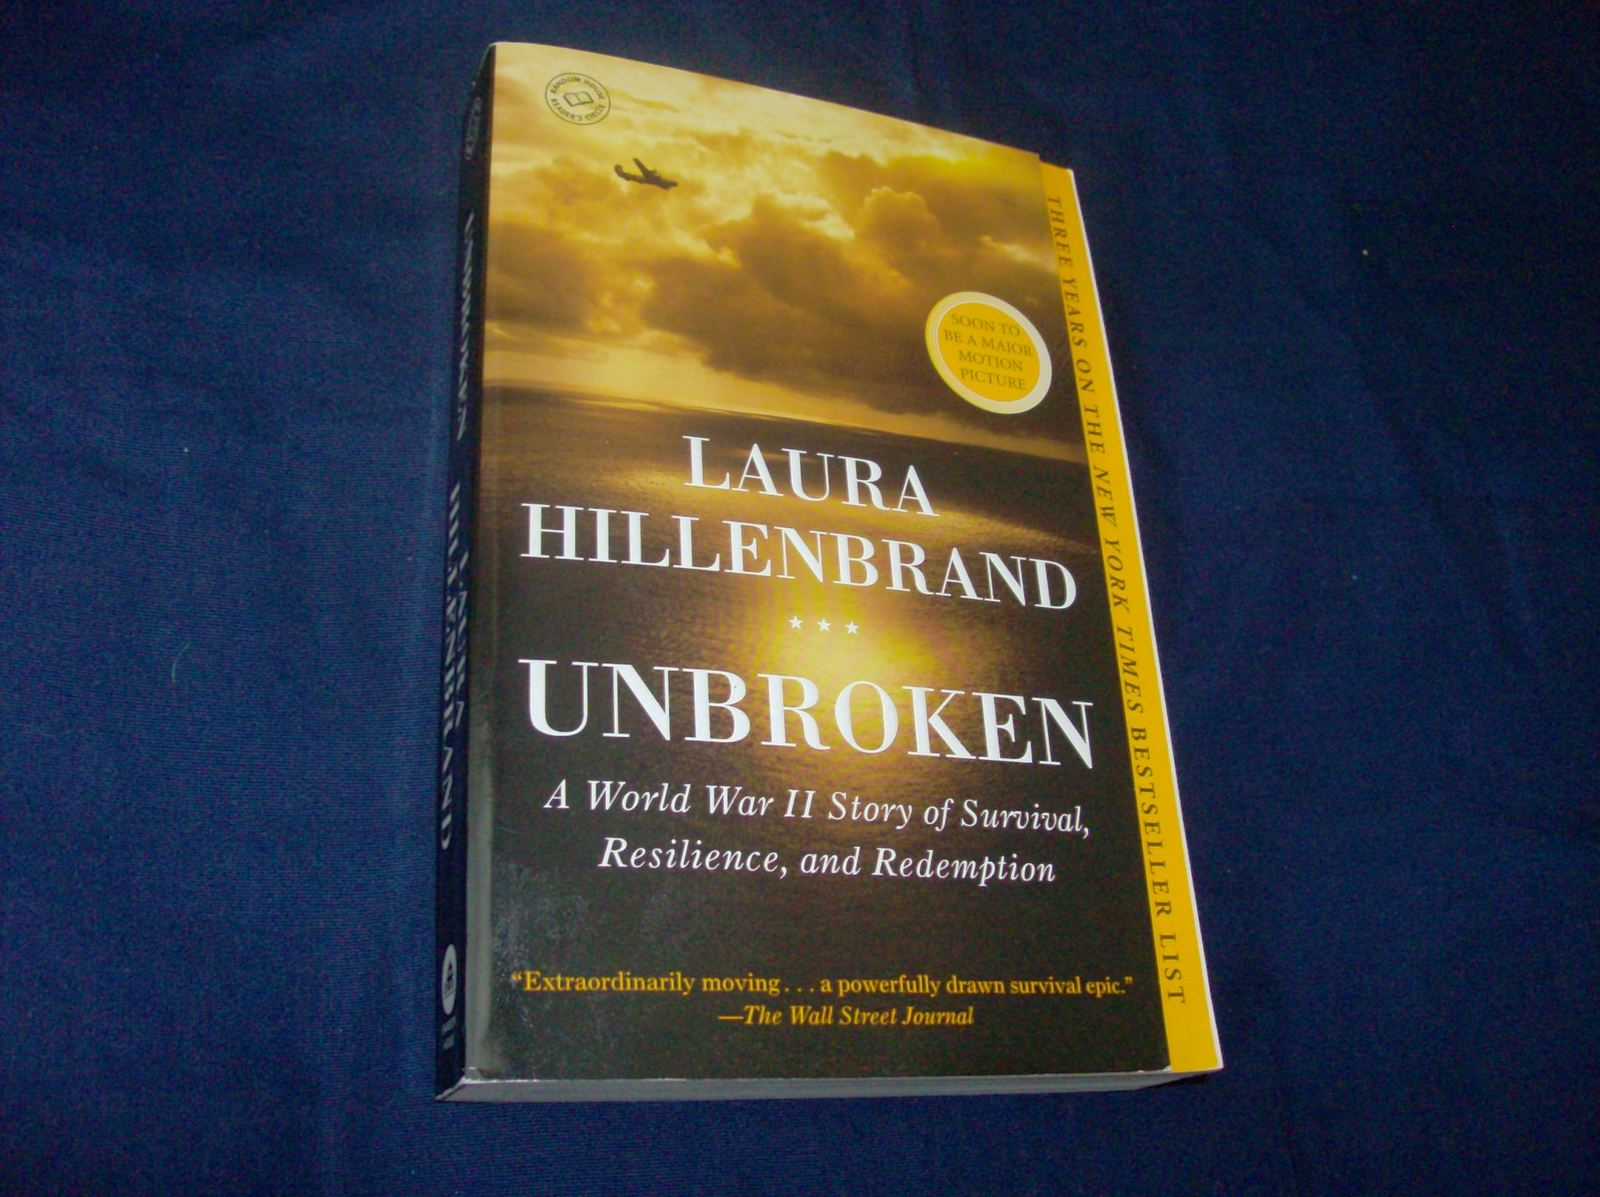 unbroken by laura hillenbrand essay Bravery, resilience, survival of louie zamperini laura hillenbrand is an amazing writer and the new york times bestselling author of the book seabiscuit.